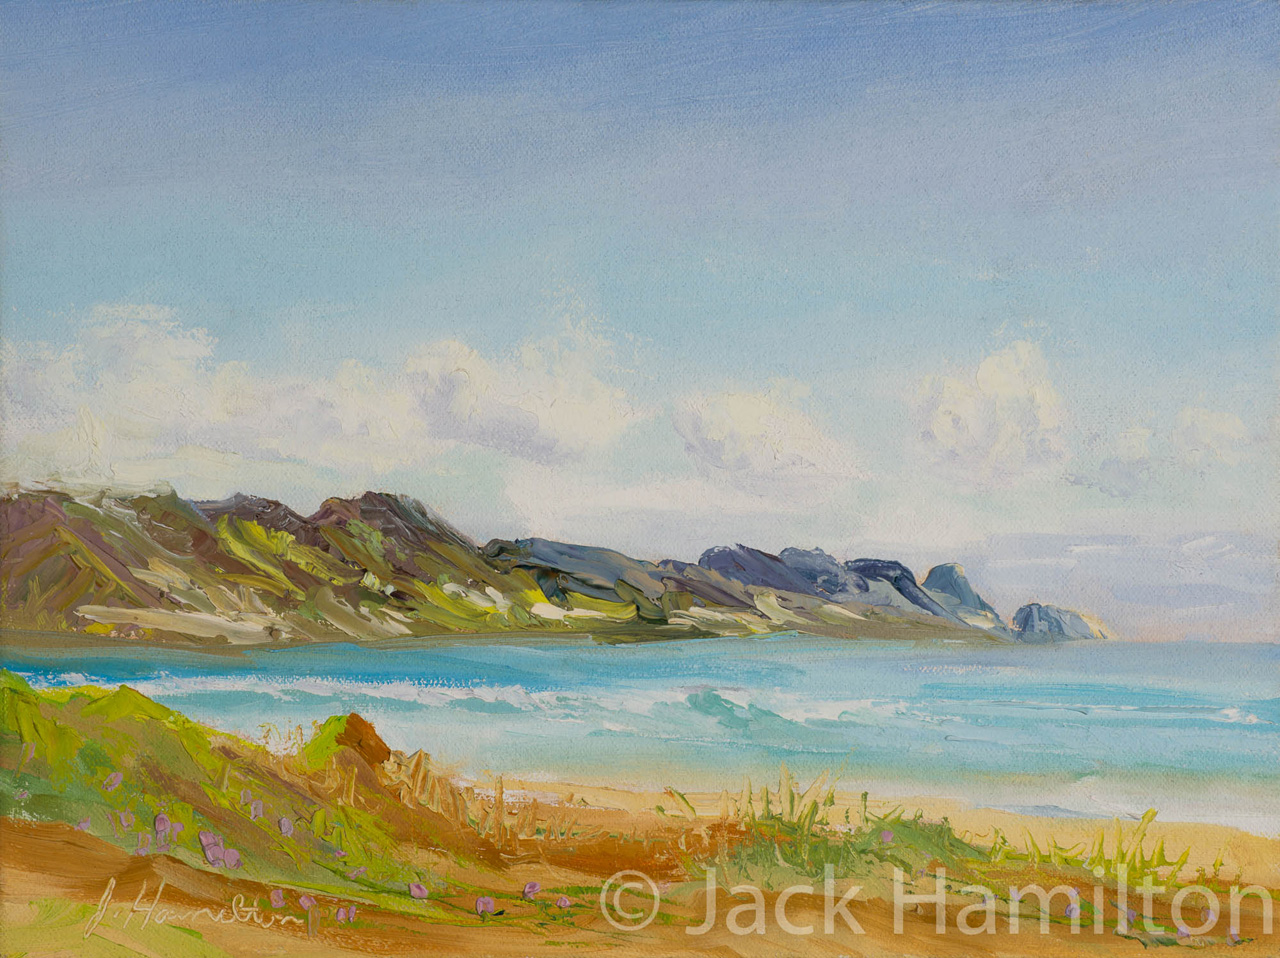 Kanaha Afternoon by Jack Hamilton oil on canvas